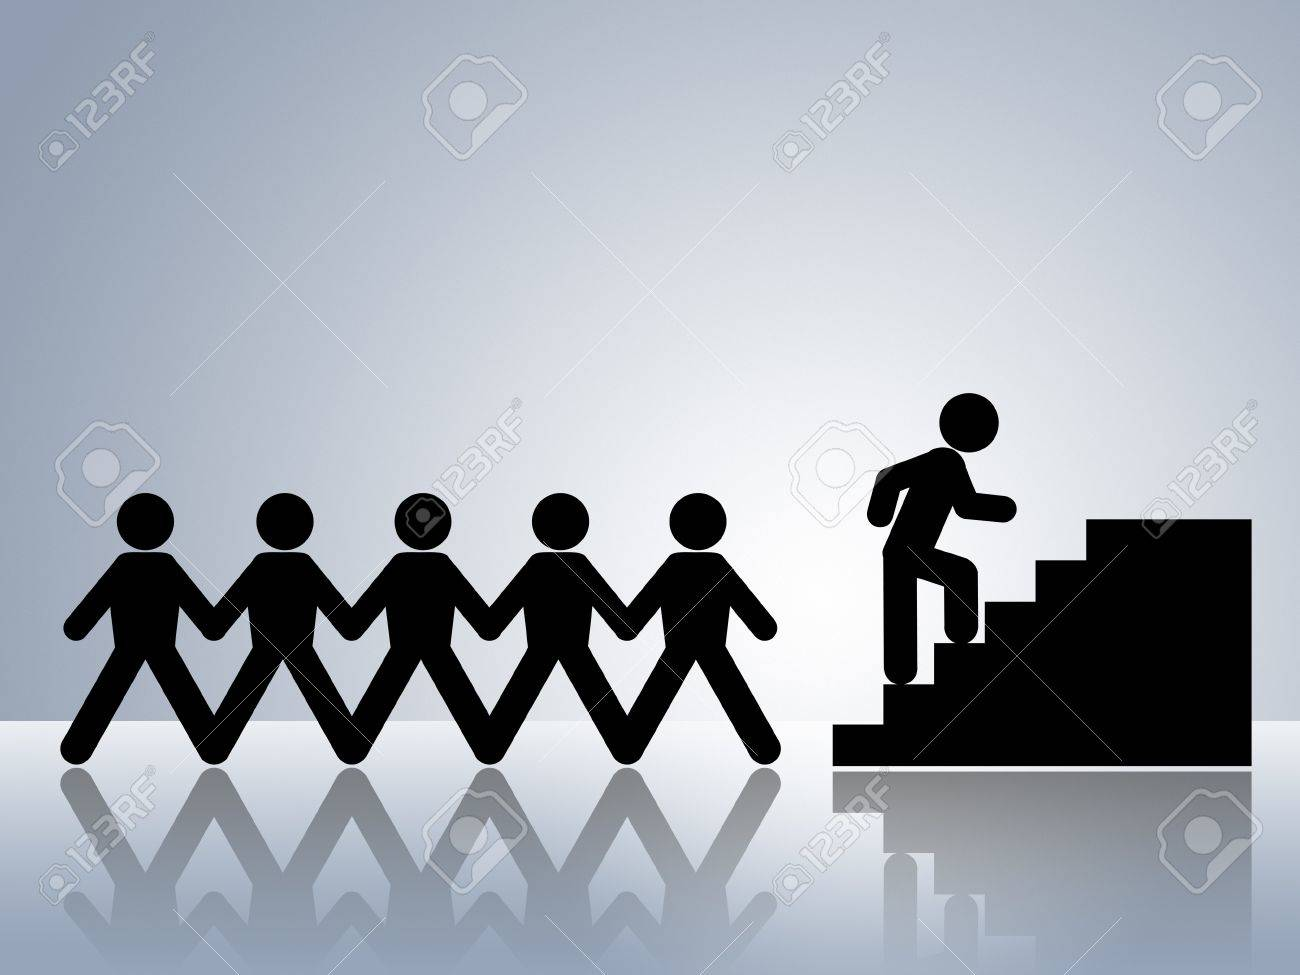 paper chain figures climbing stairs job promotion or career move stock photo paper chain figures climbing stairs job promotion or career move